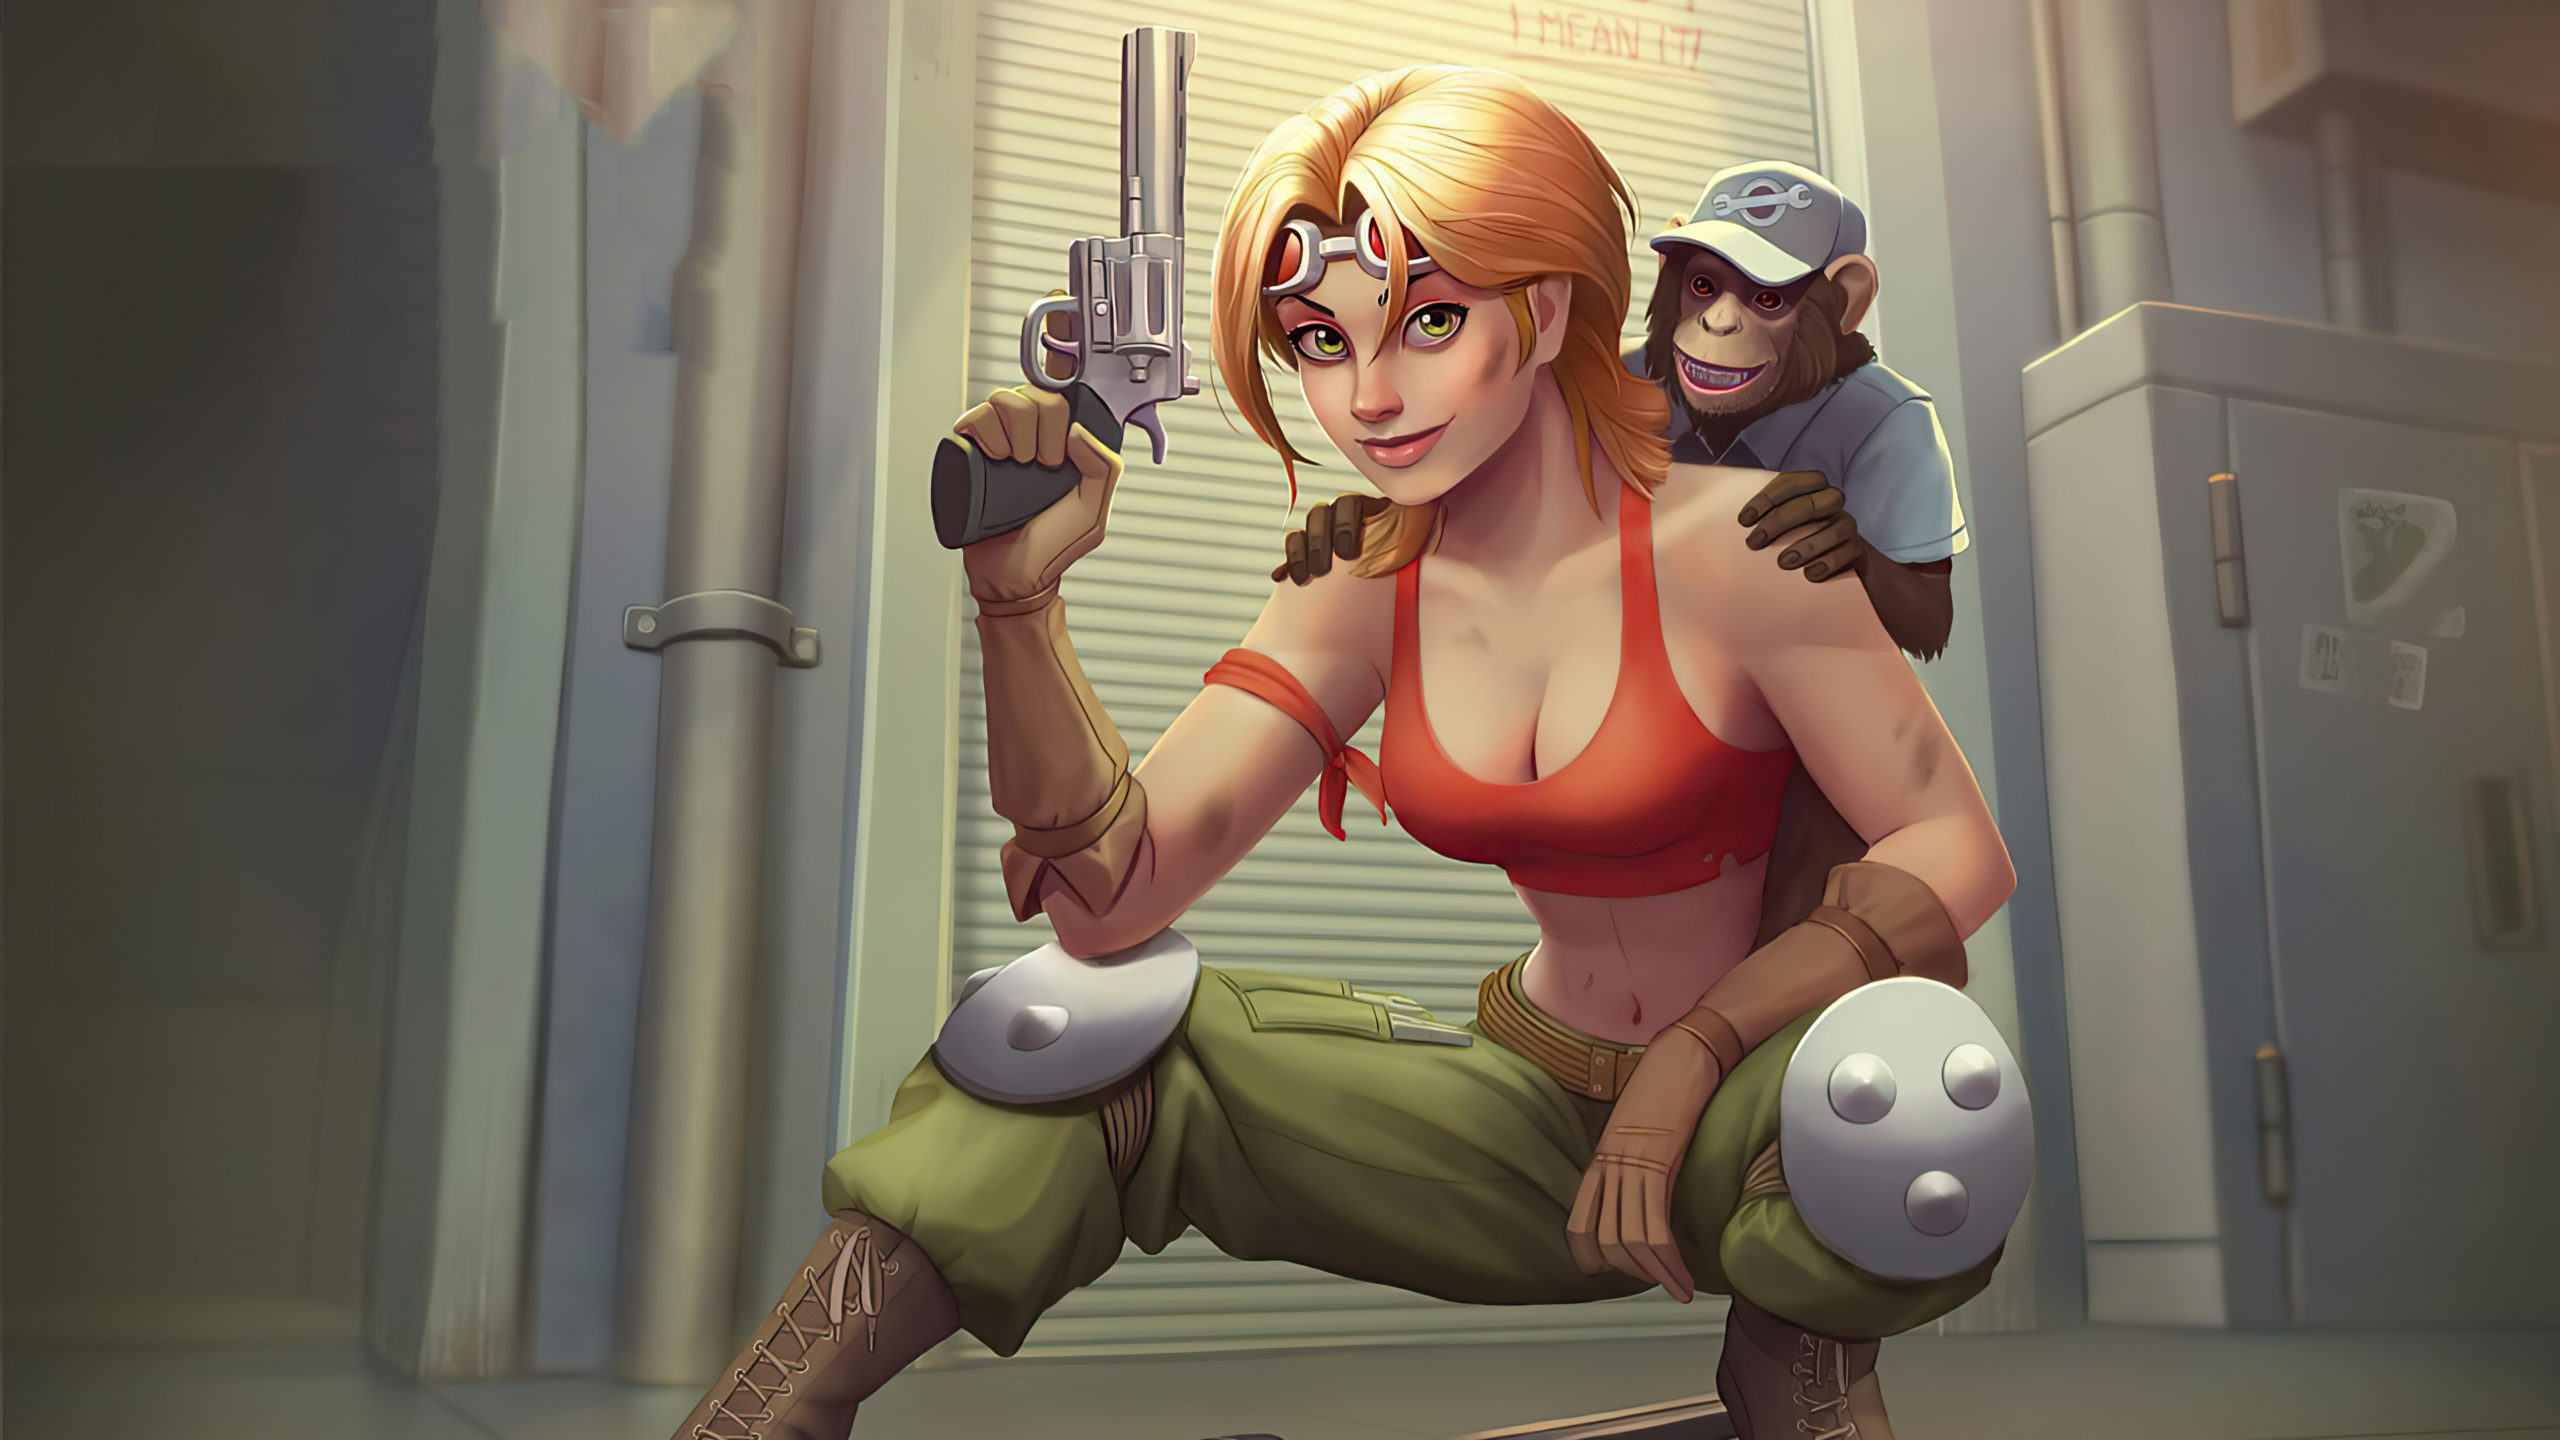 Girl With Gun And Monkey Mg Wallpaper 3840x2160 resolution